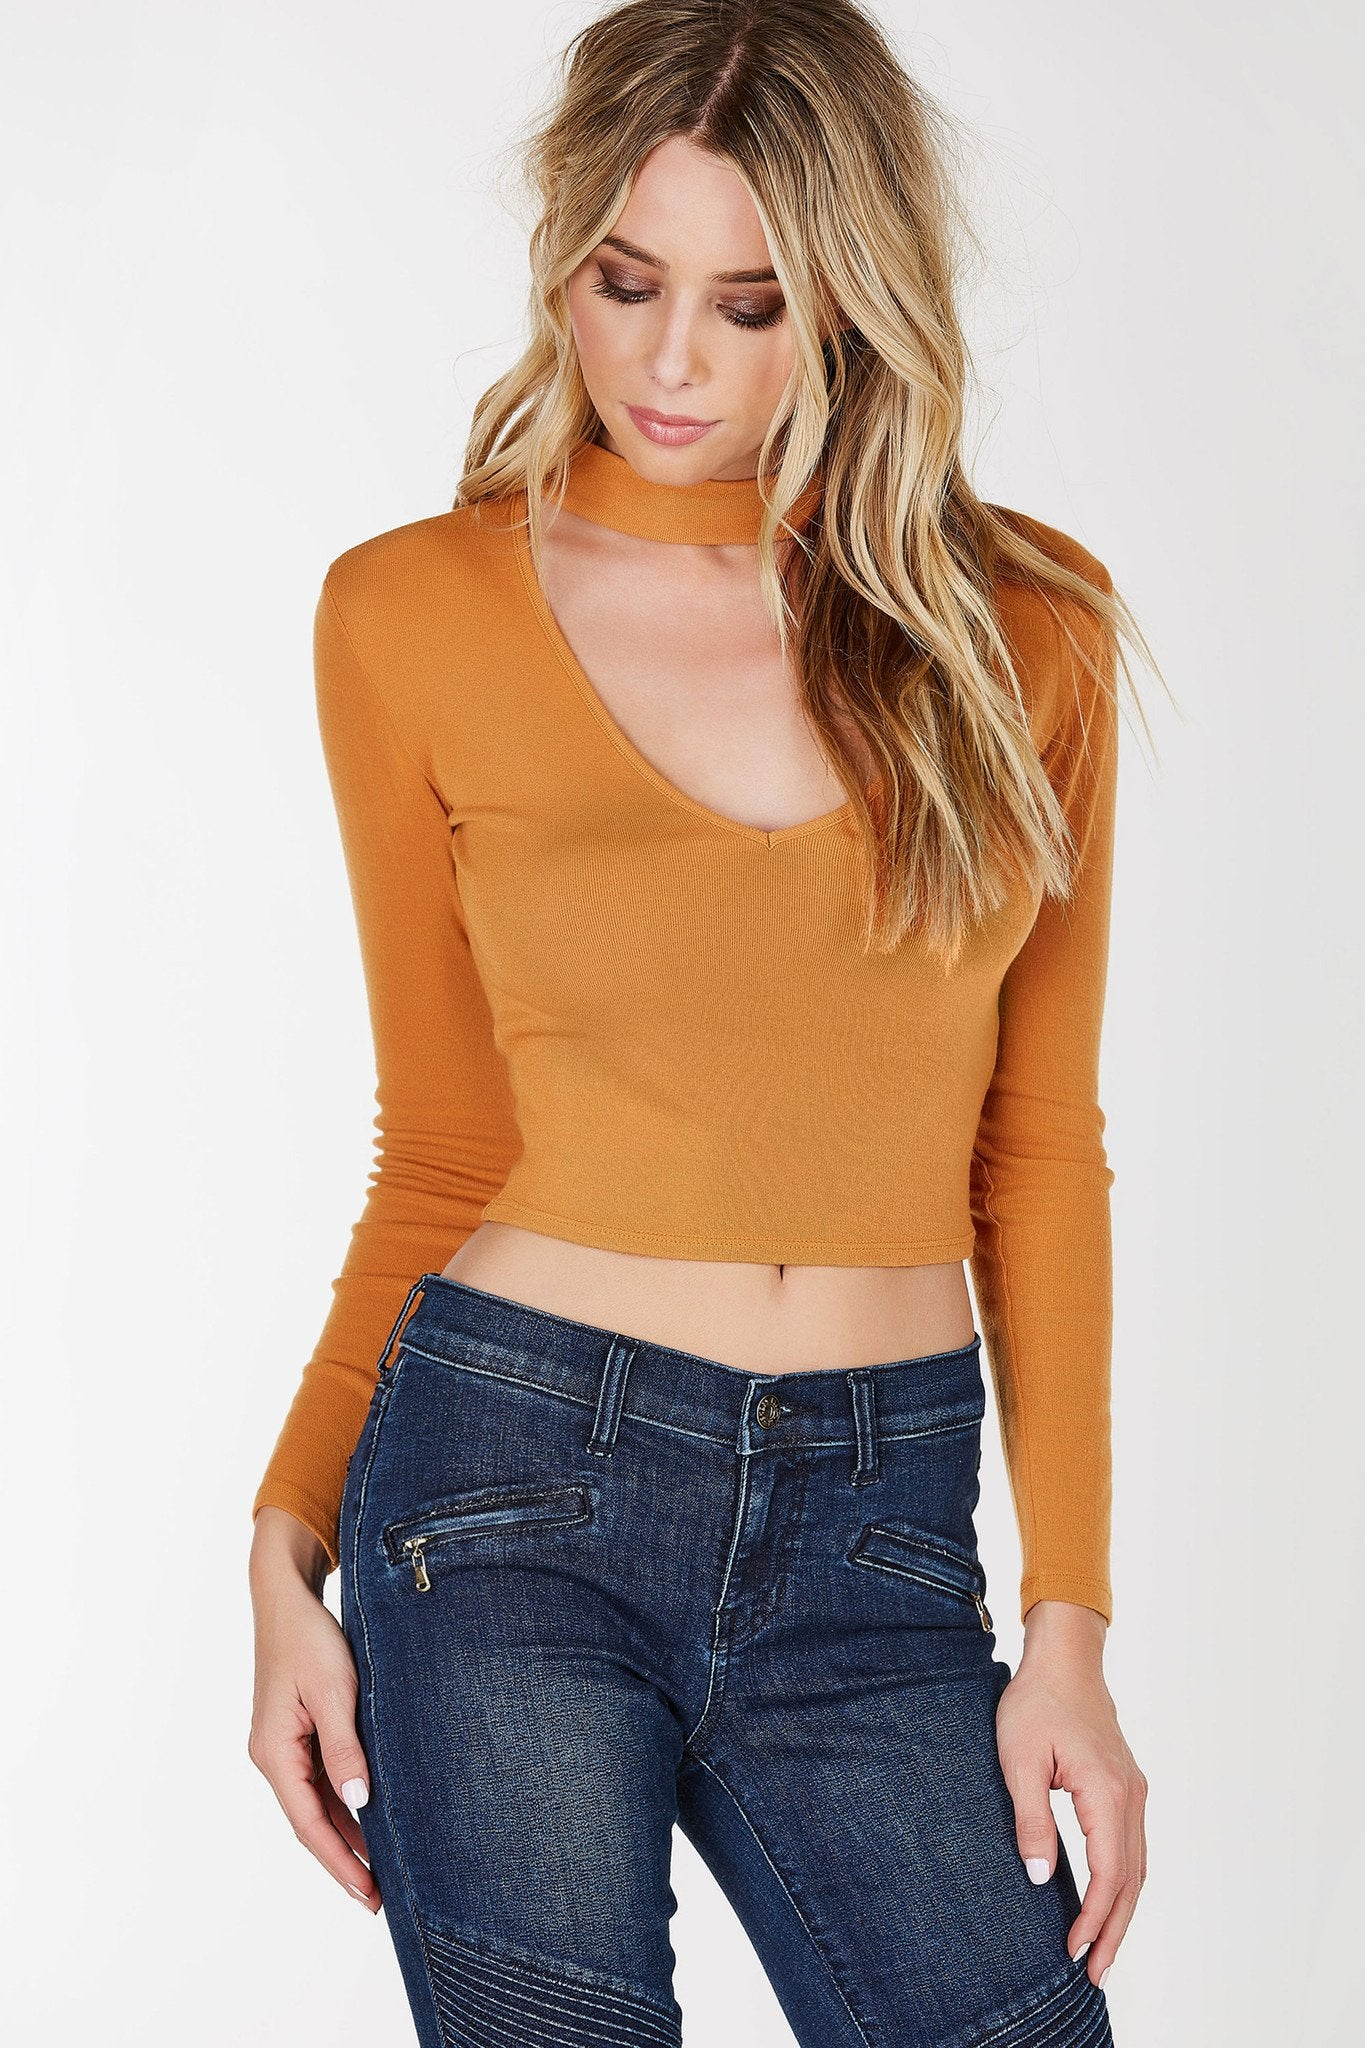 A simple cut long sleeve crop top perfect for outings at night! Trendy and chic choker neckline with a deep V cut out. Dress it down with skinny jeans or up with a midi skirt and pumps!